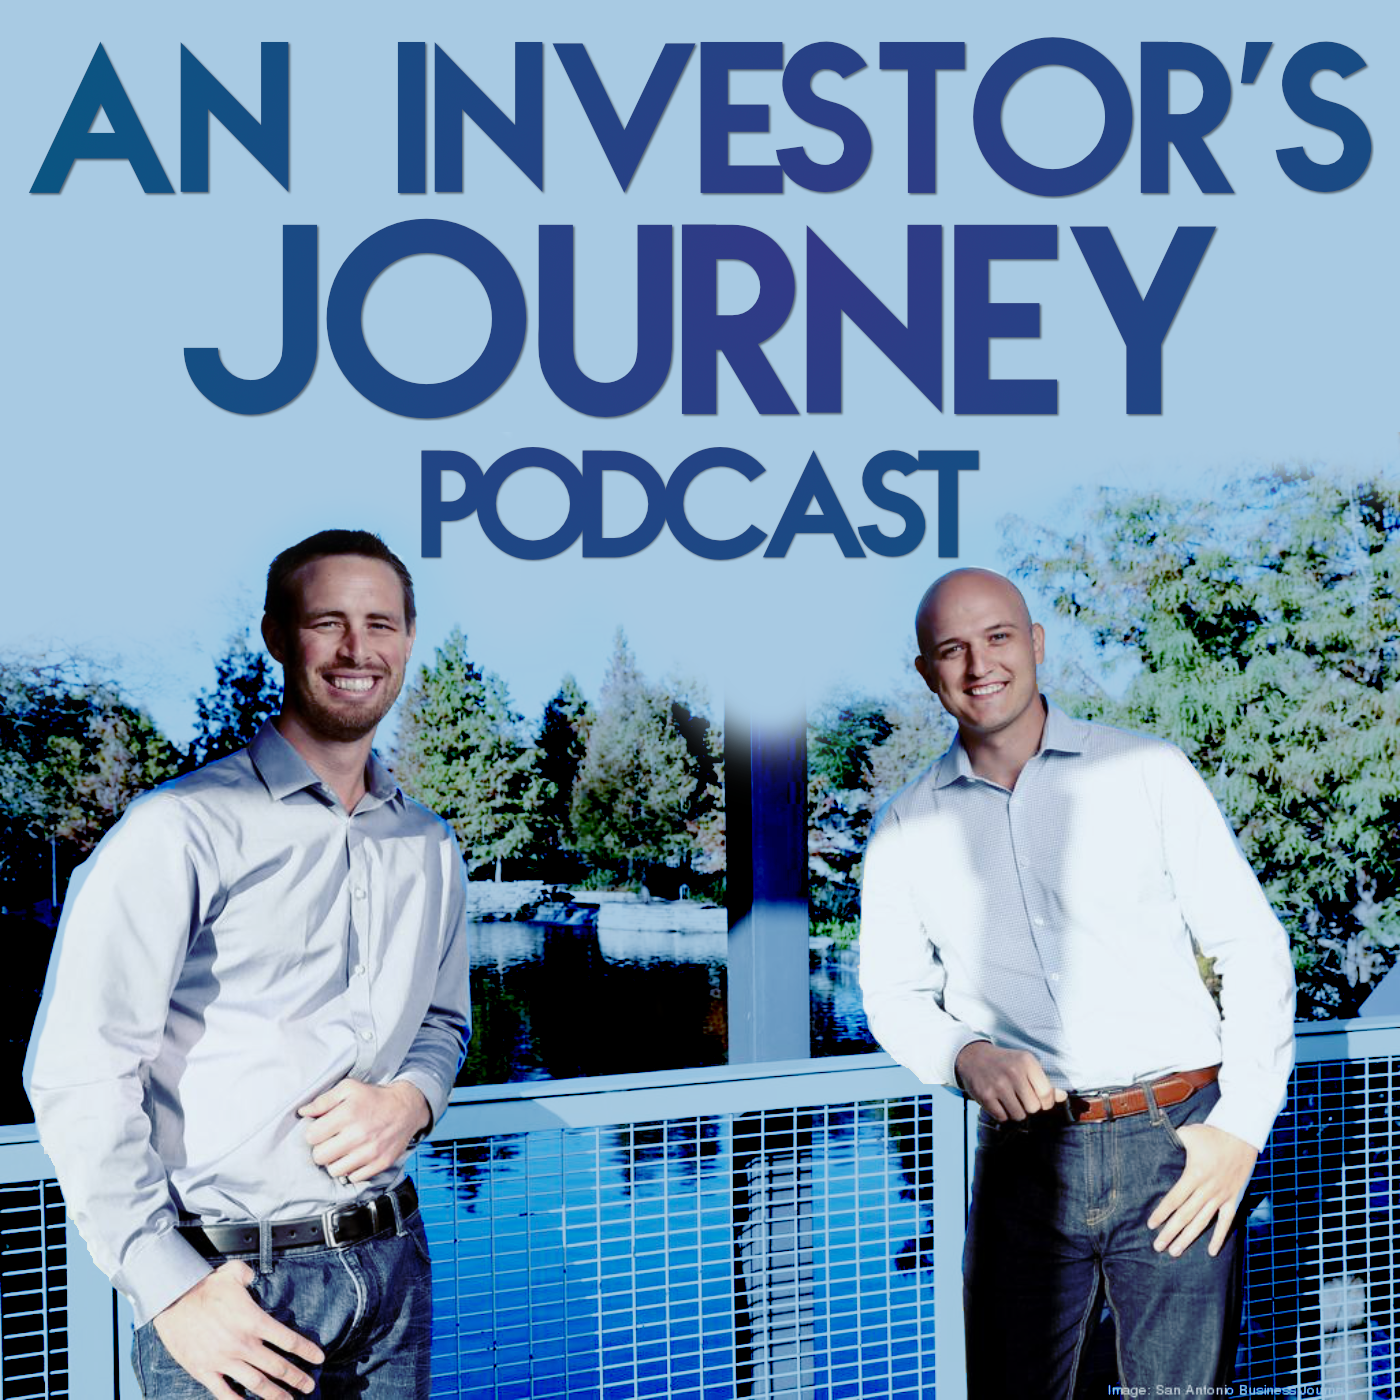 An Investor's Journey Podcast